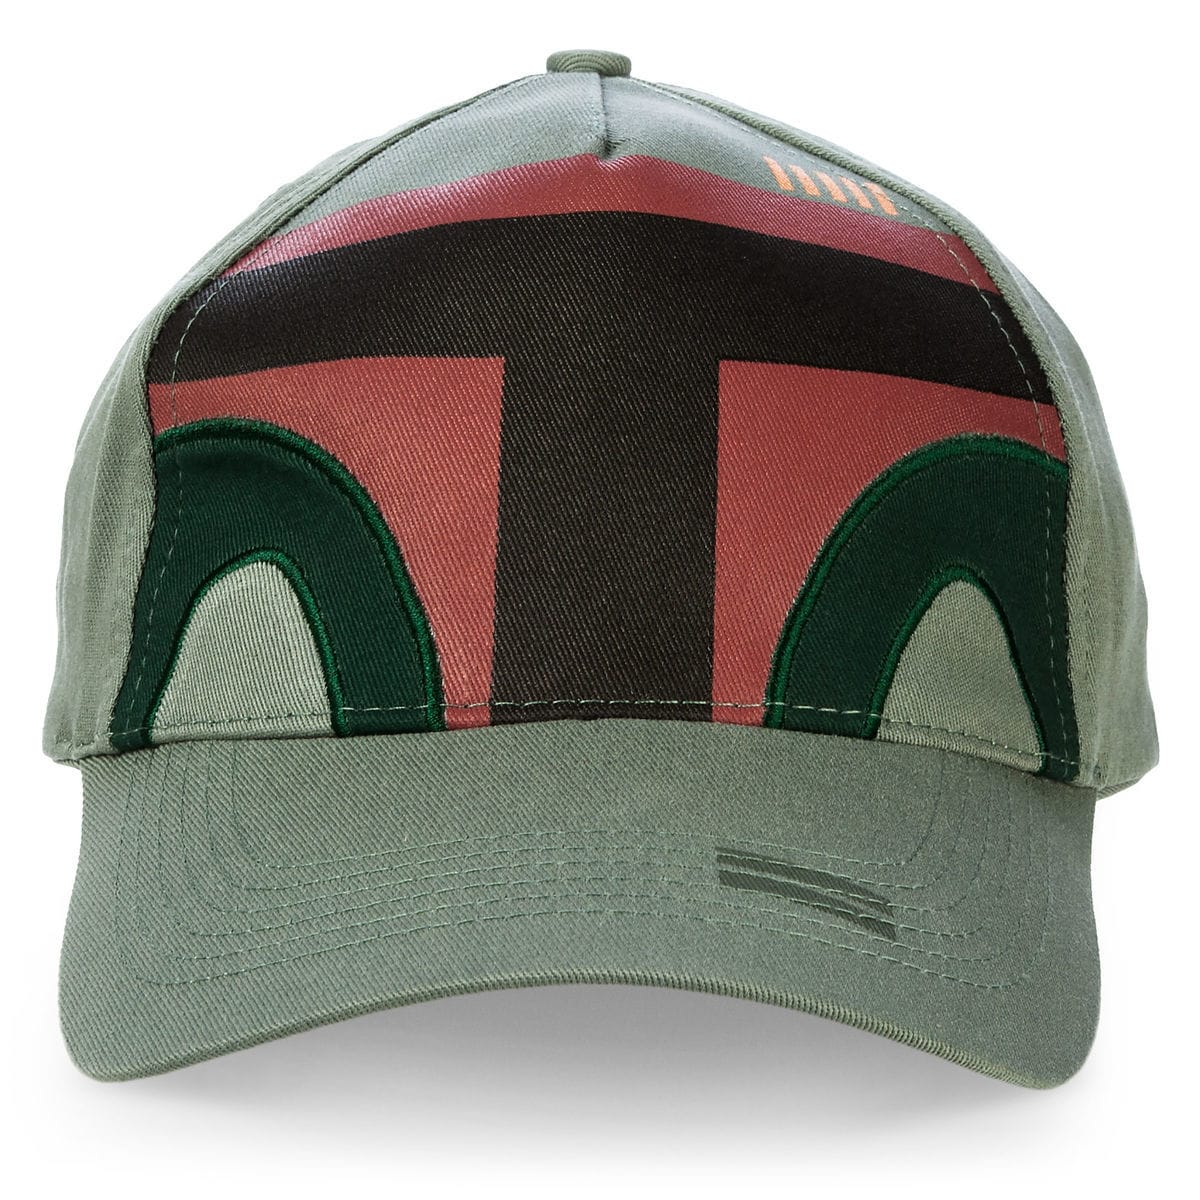 Product Image of Boba Fett Baseball Cap for Adults - Star Wars   1 6697b1d94ce